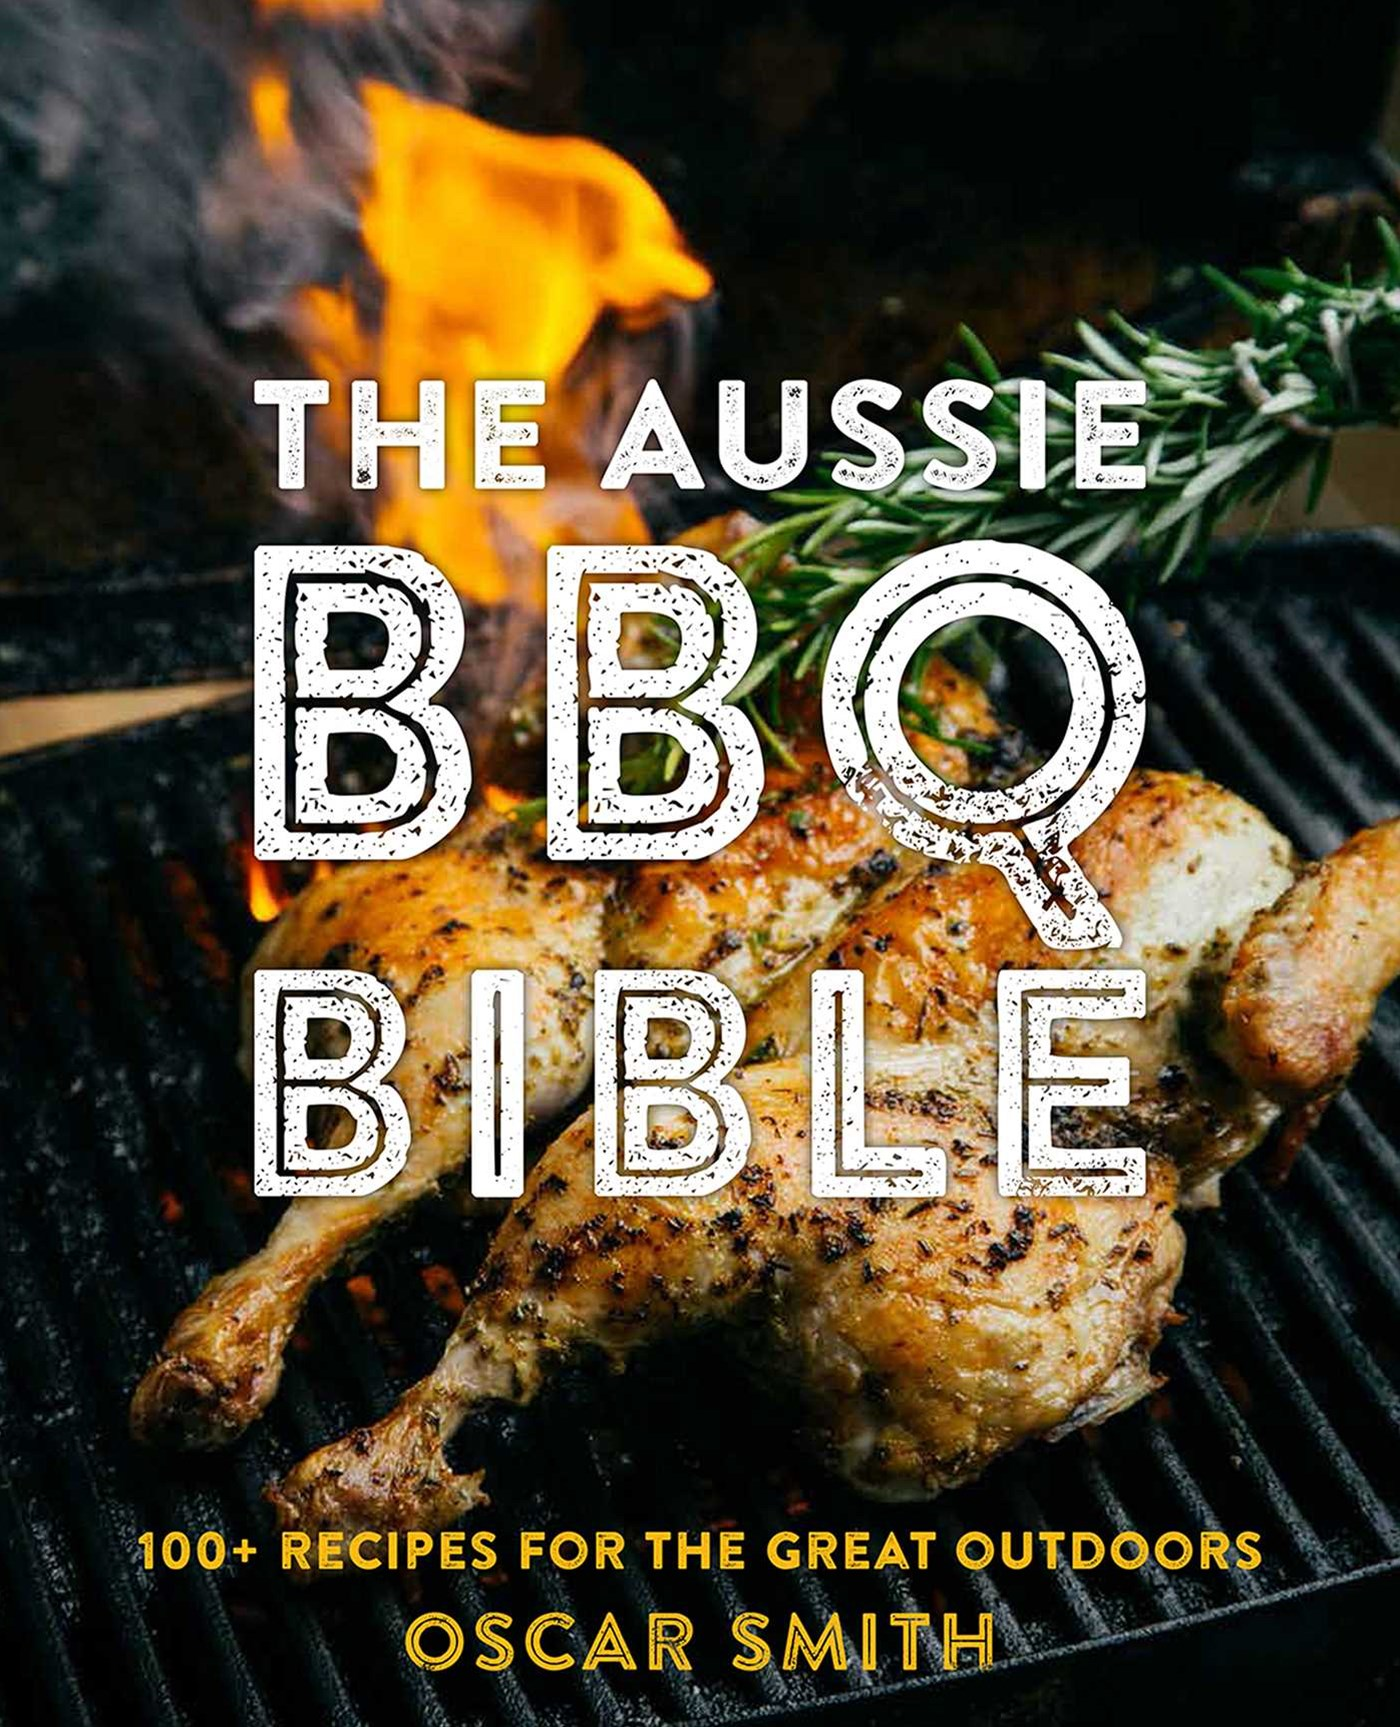 The Aussie BBQ Bible: 100+ recipes for the great outdoors